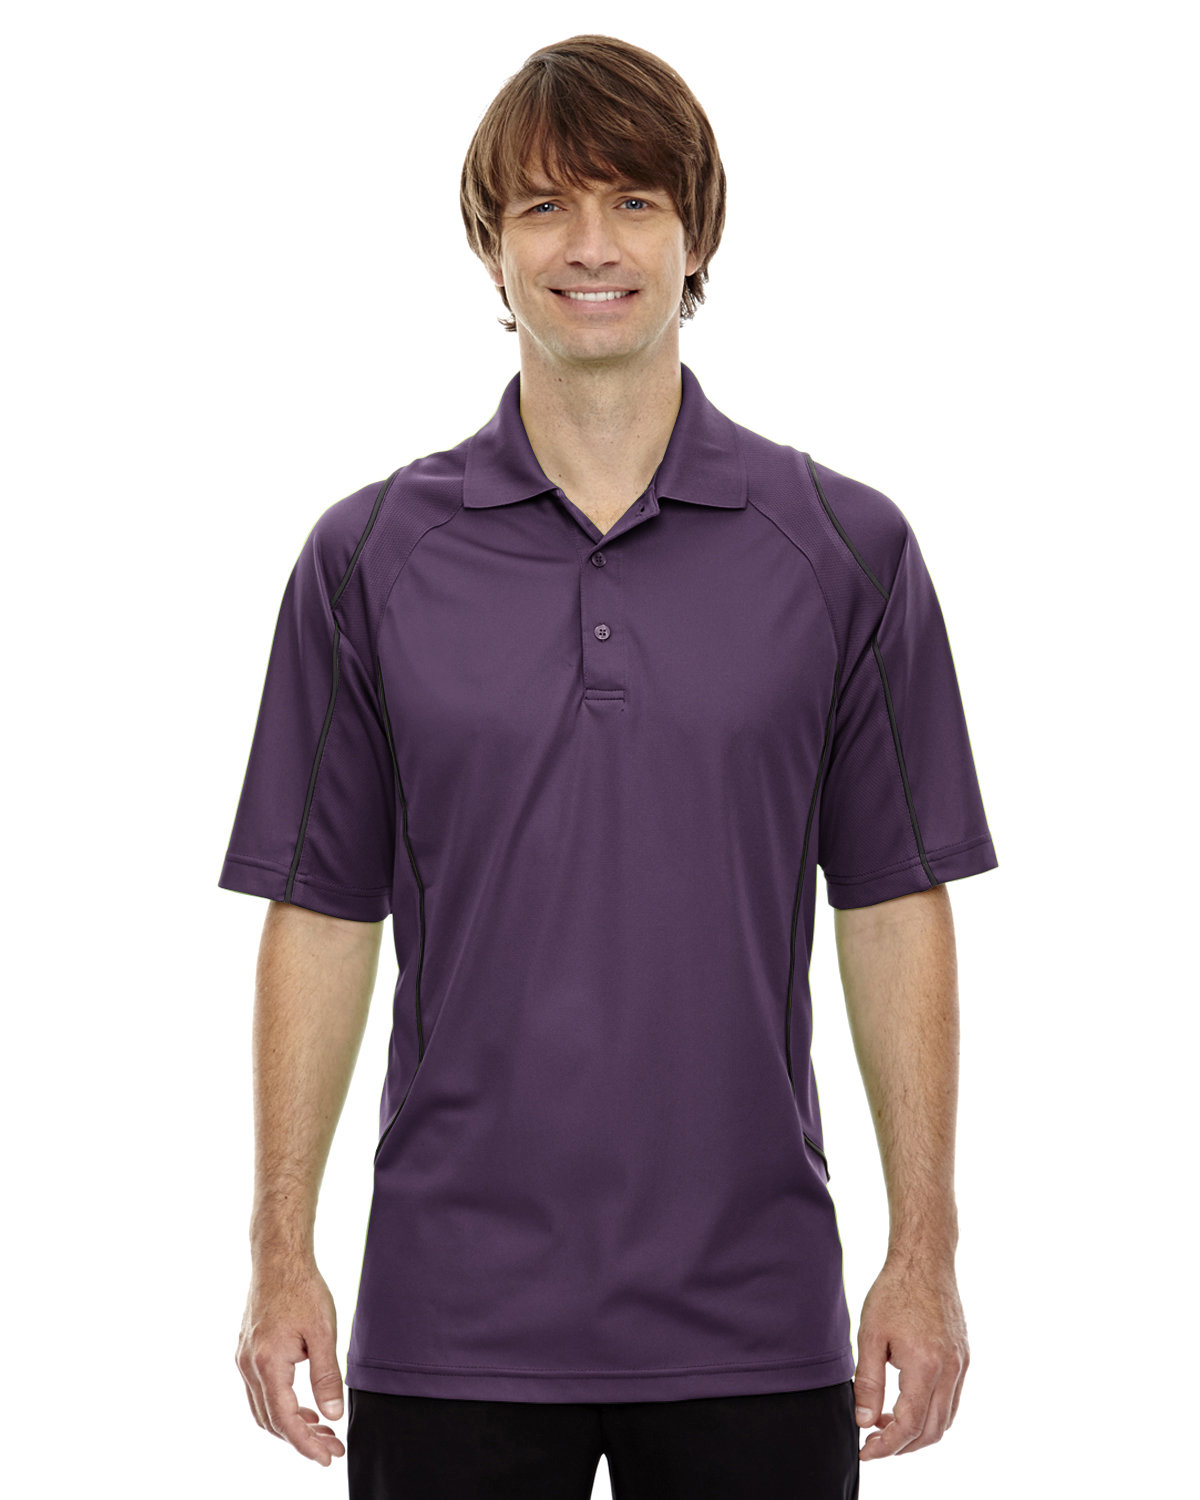 Extreme Men's Eperformance™ Velocity Snag Protection Colorblock Polo with Piping MULBERRY PURPLE